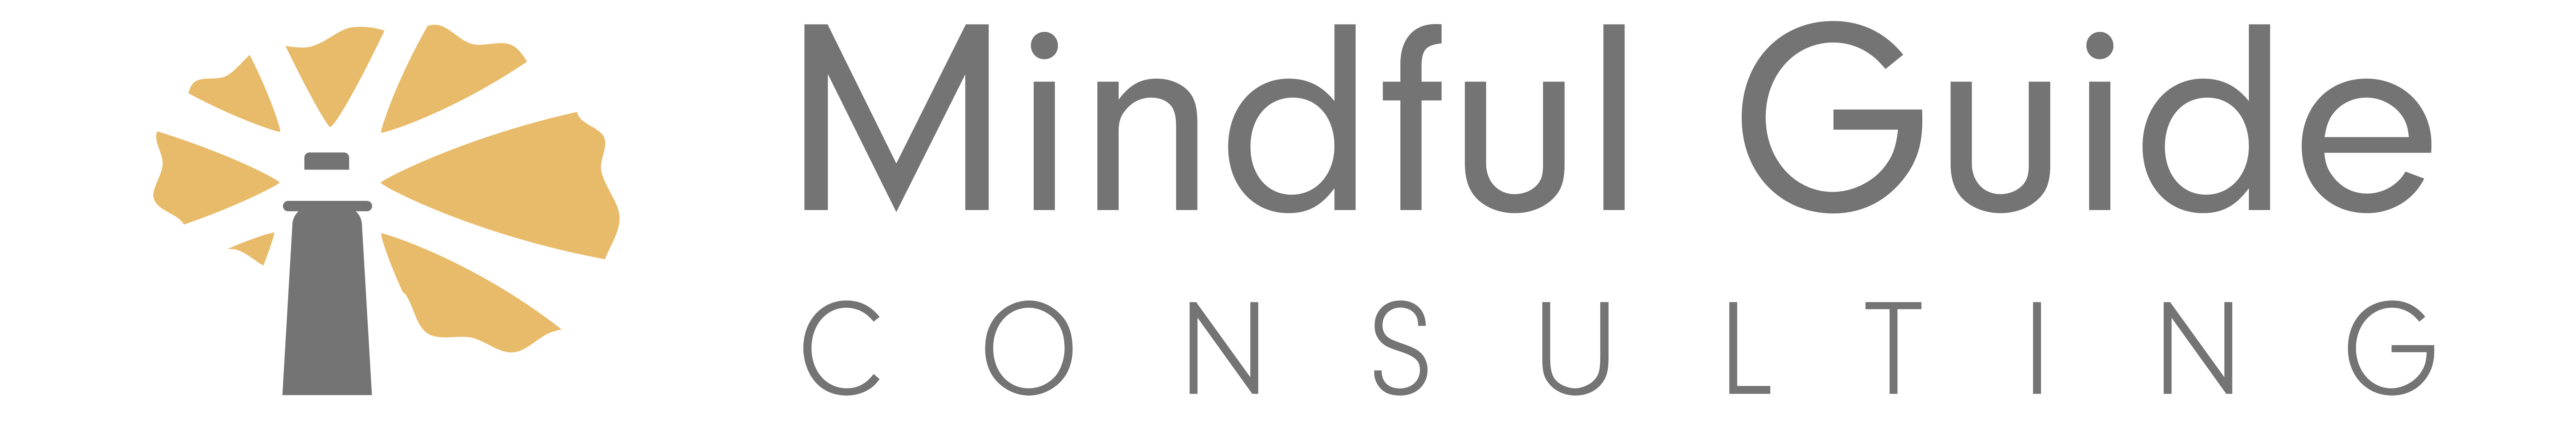 Mindful Guide Consulting